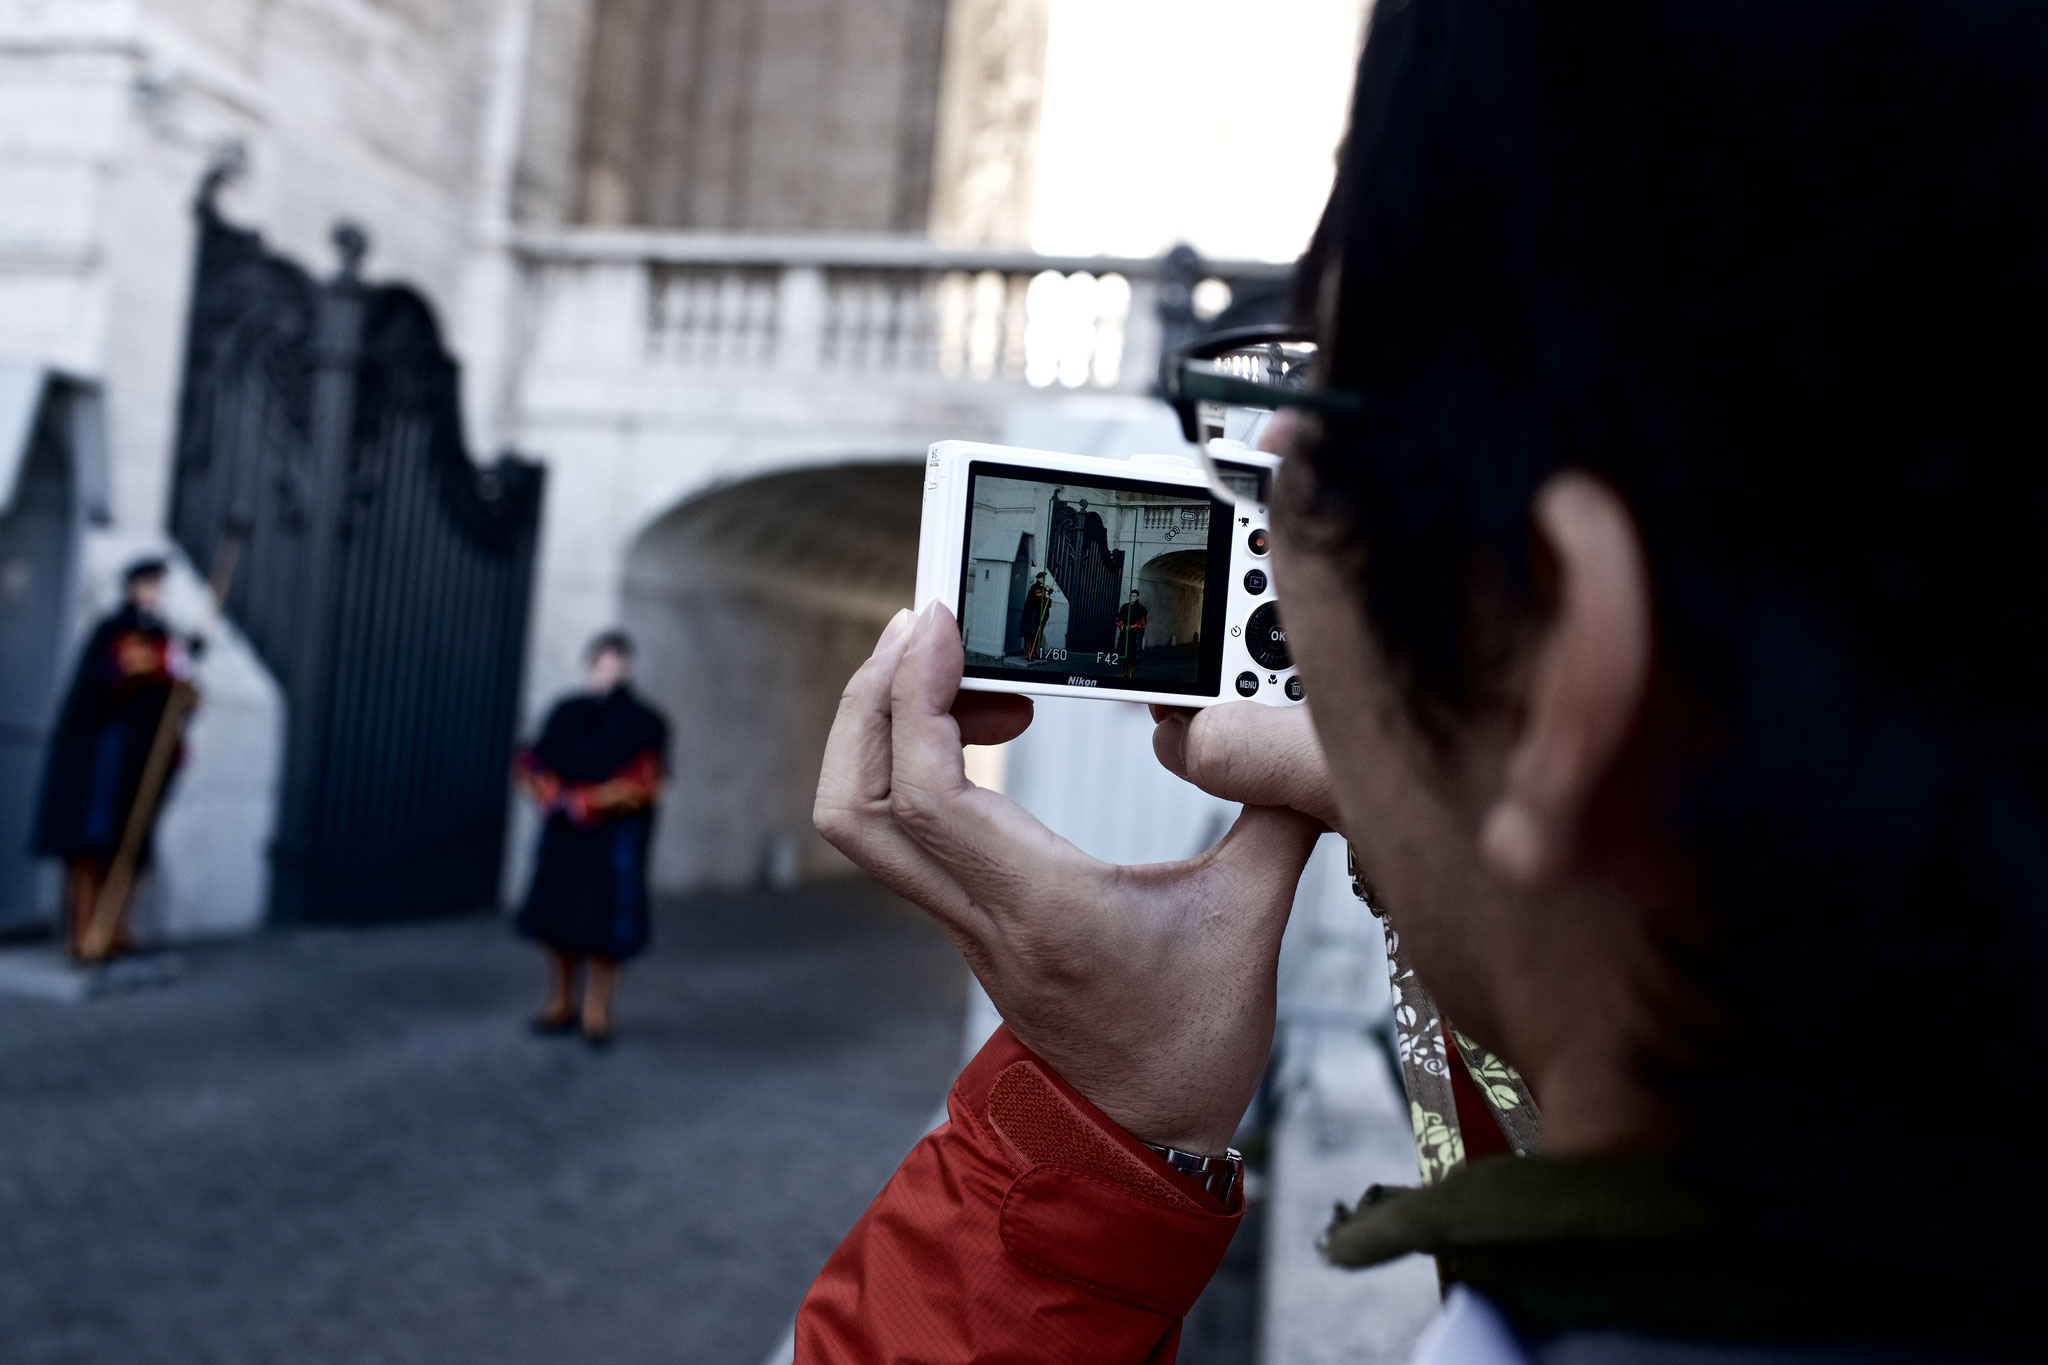 Guards being photographed by a tourist.